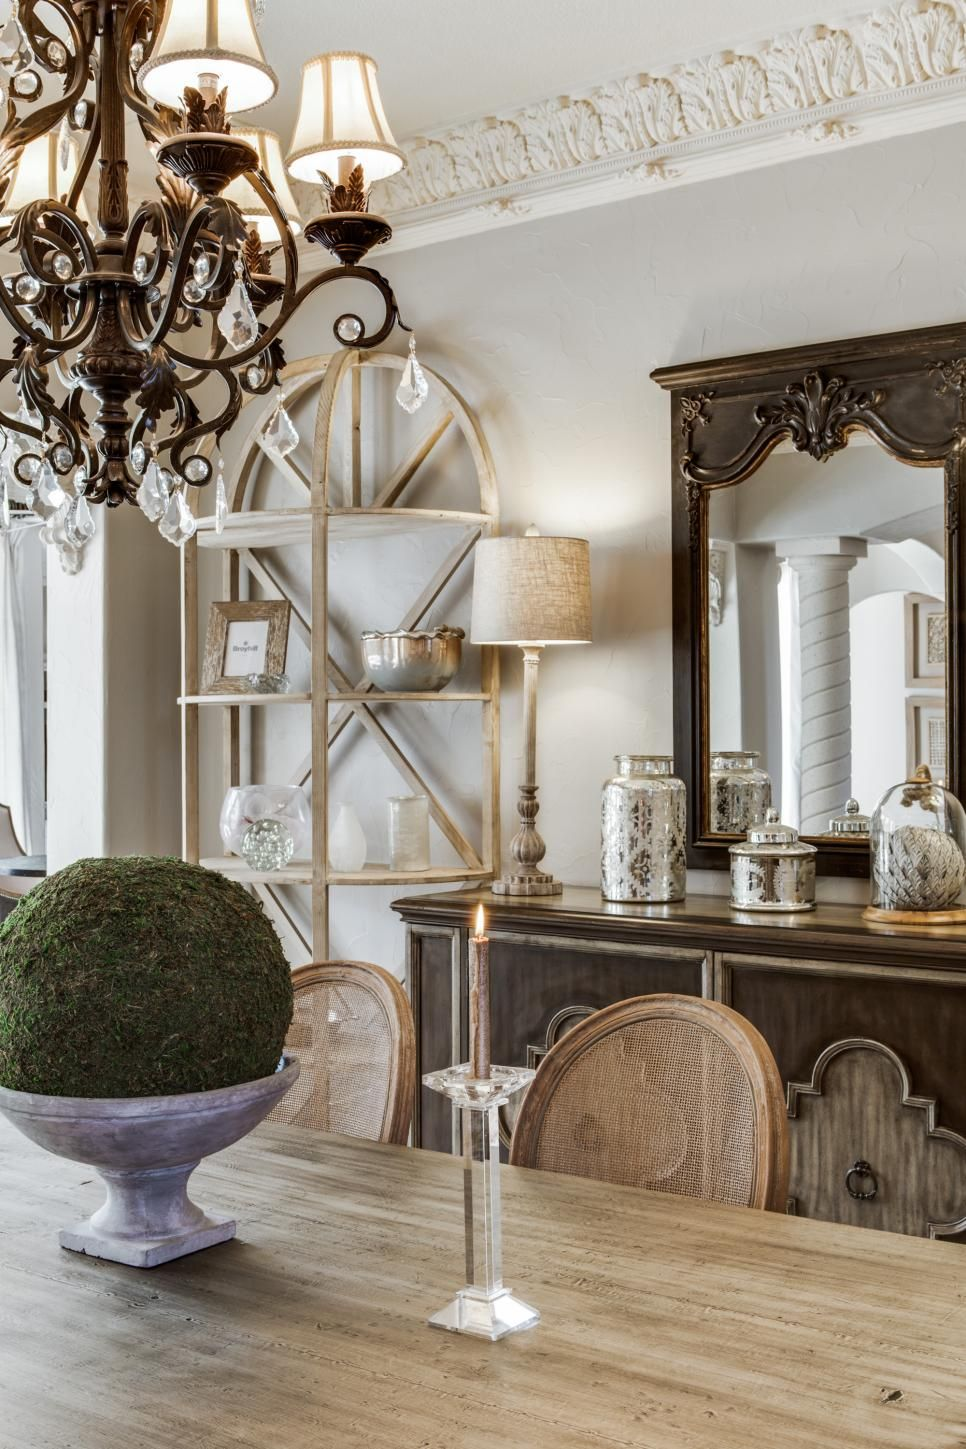 A Farmhouse Style Dining Table Pairs With An Elegant Brown Buffet